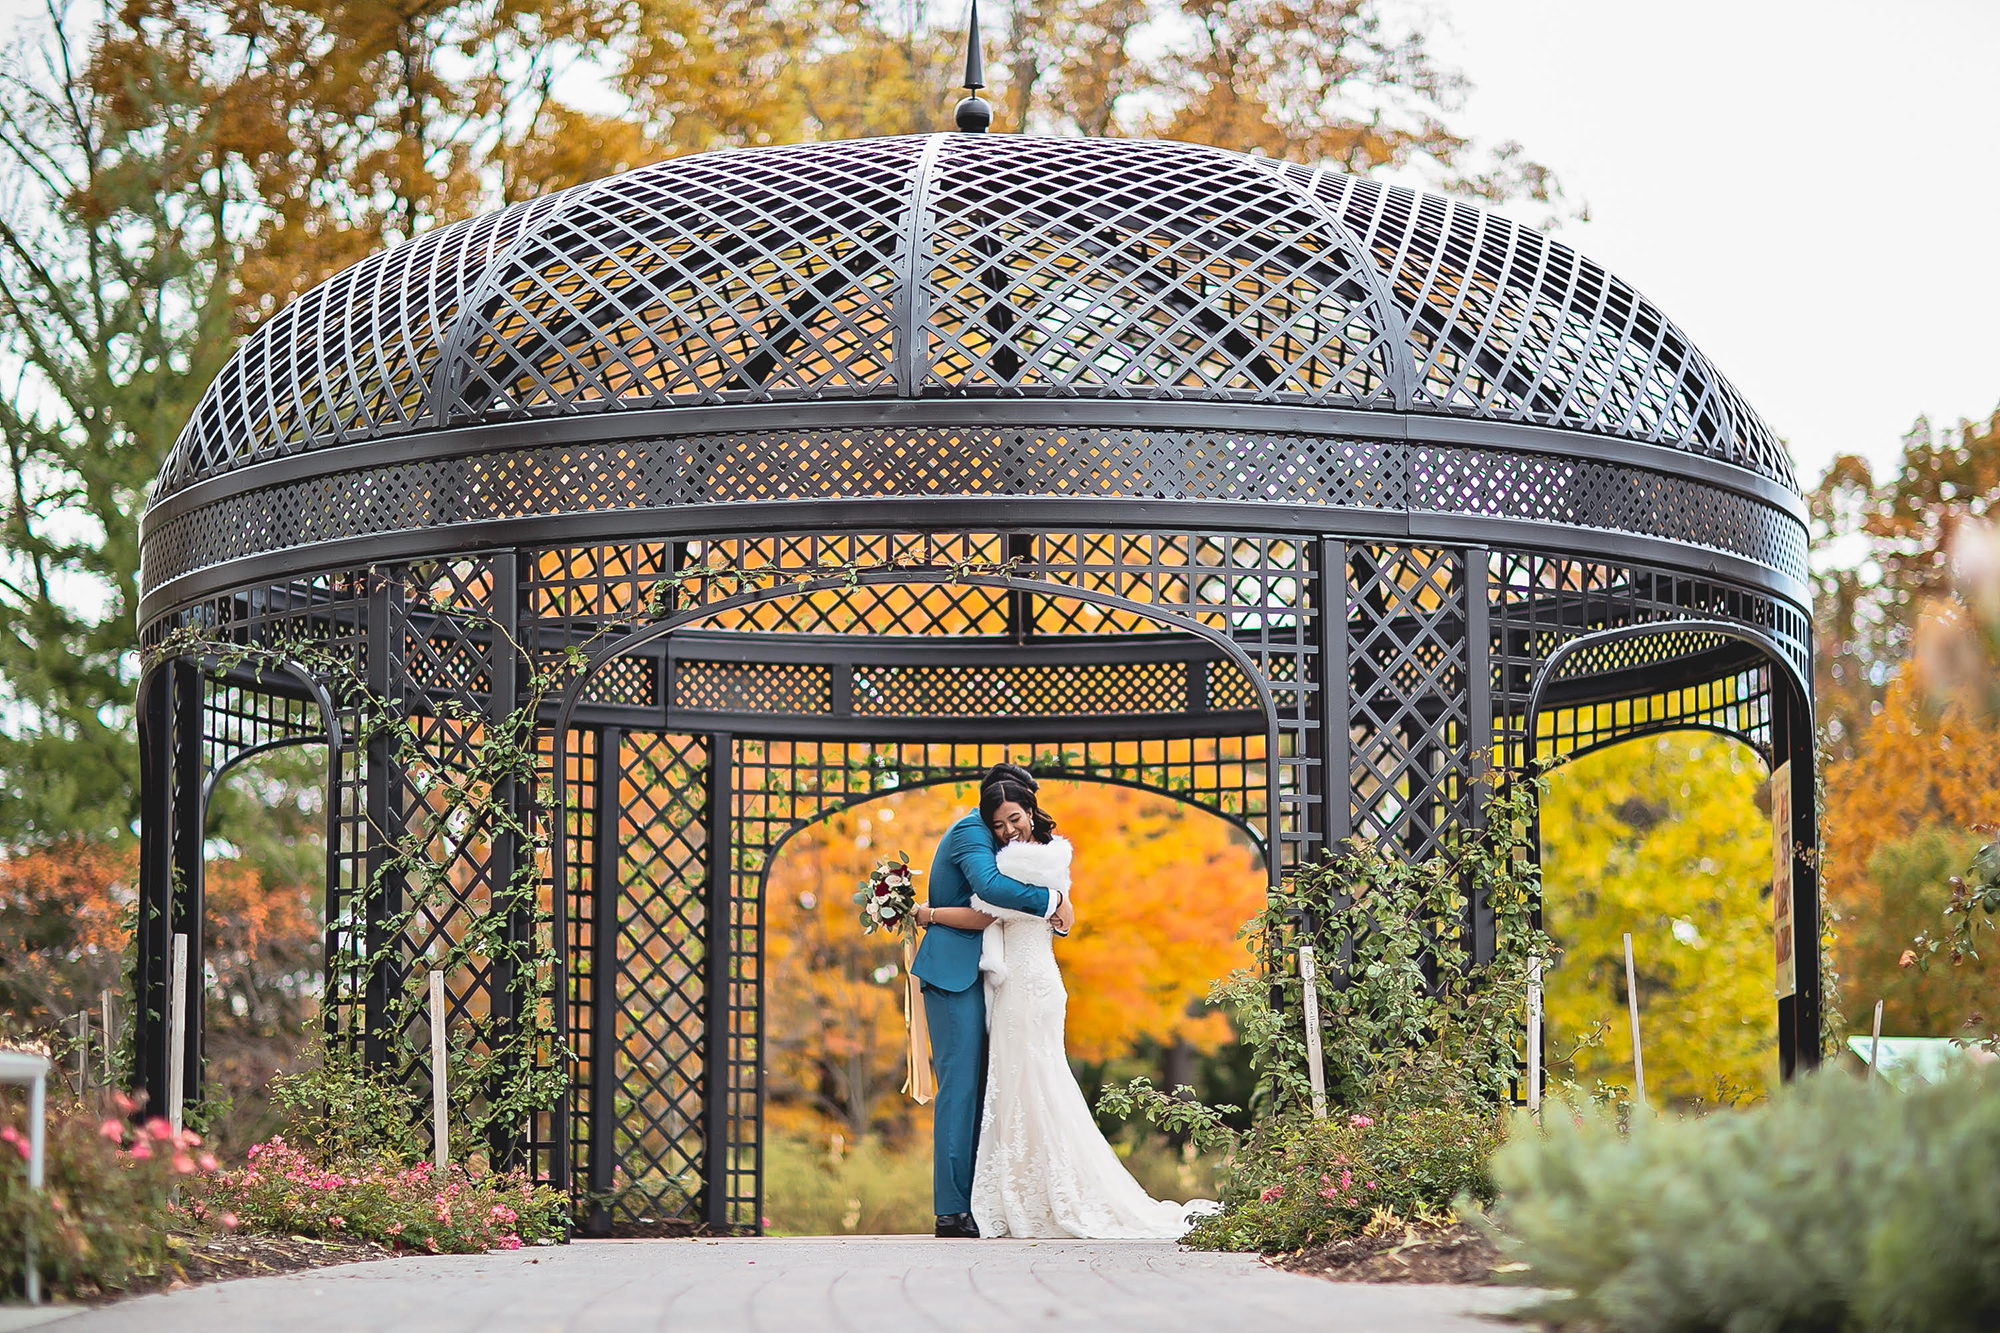 Wedding bride and groom in Hendrie Park gazebo credit ESM Photography - Can You Drink Alcohol In The Royal Botanical Gardens